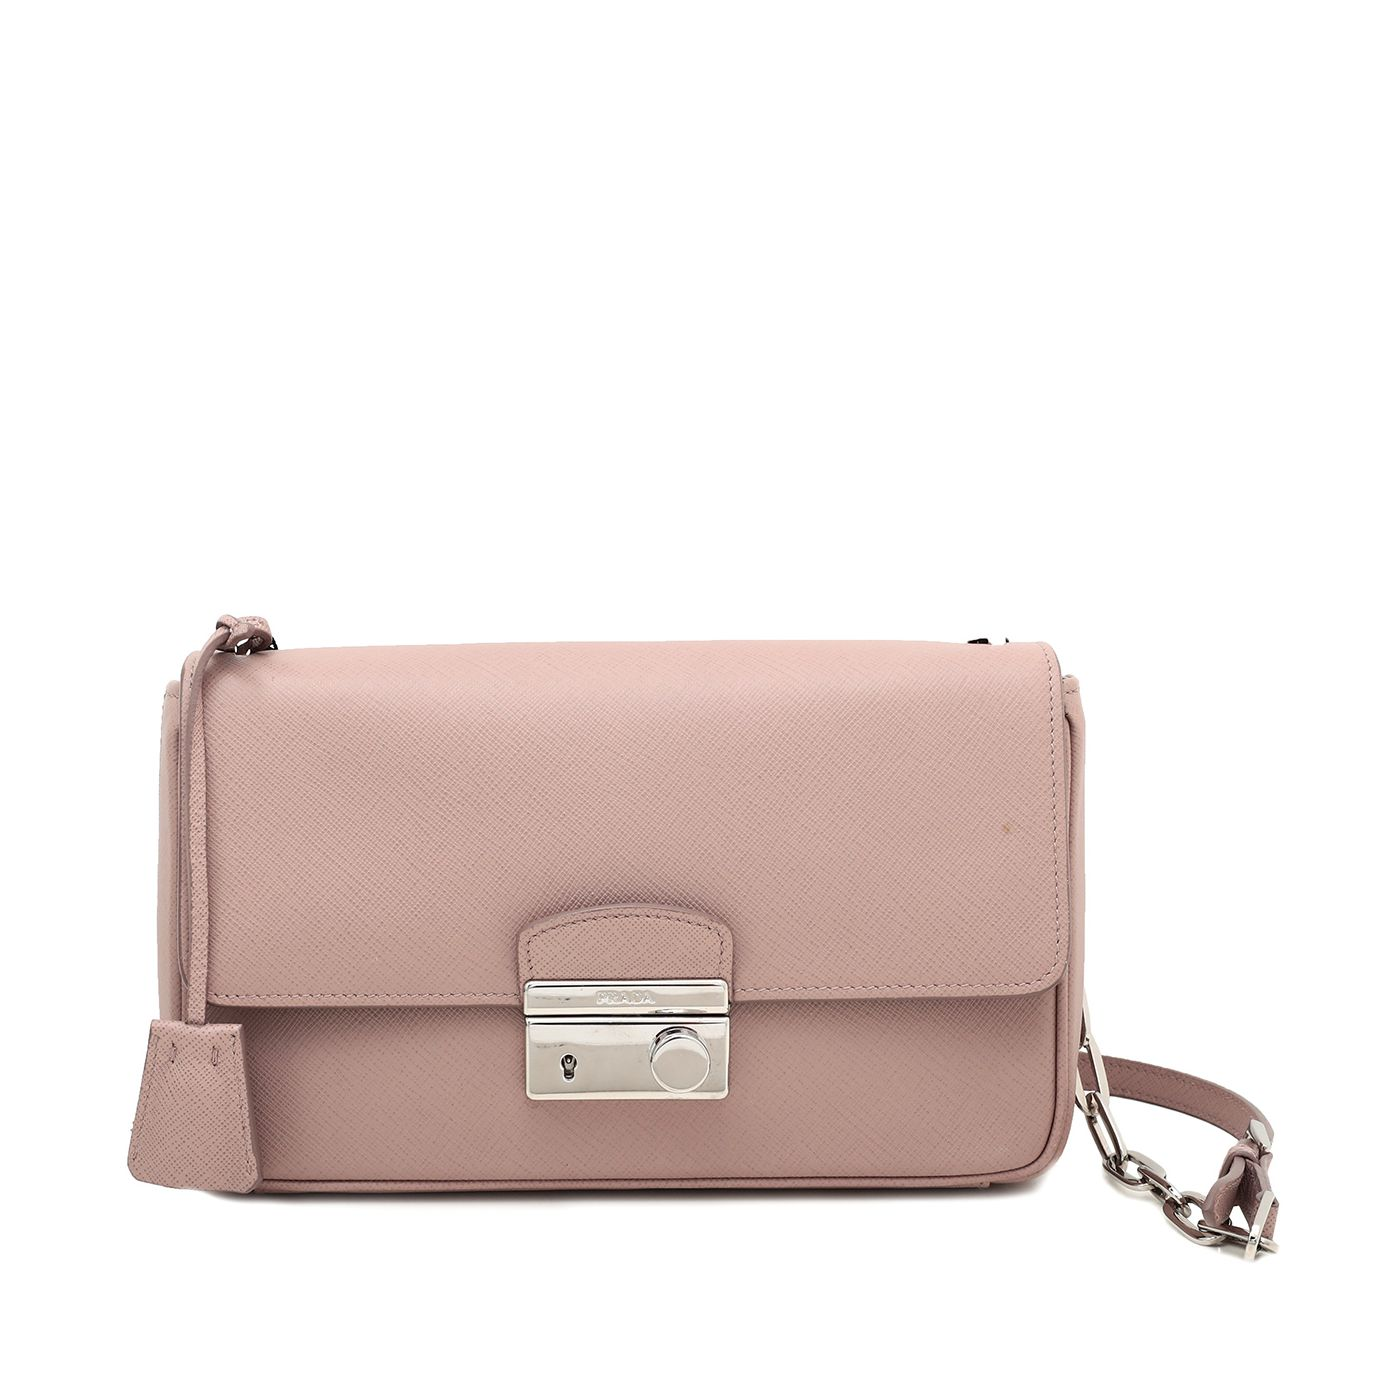 Prada Nude Lux Sound Shoulder Bag